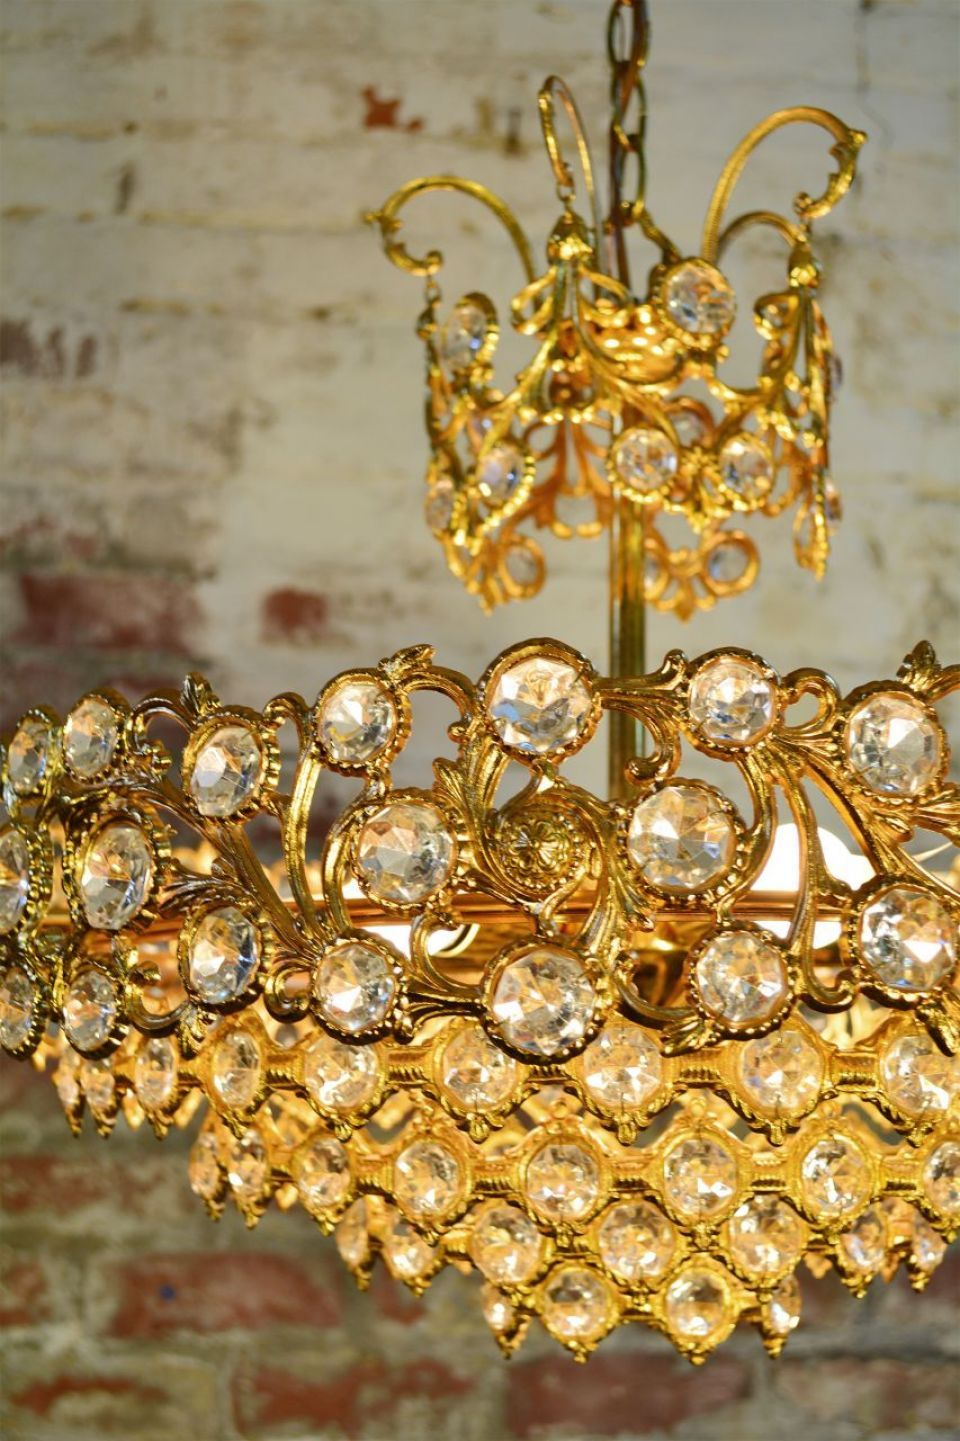 Sciolari Lobmeyr Chandelier | A very rare Sciolari Lobmeyr gilt brass and crystal chandelier dating from the 1950's/1960's. The fixture showcases over 180 individual crystals and illuminates with five lights. Whether suspended from a great room, dining room or bedroom, this rare fixture adds just the right amount of glitz. #crystal #gilt #interiordesign